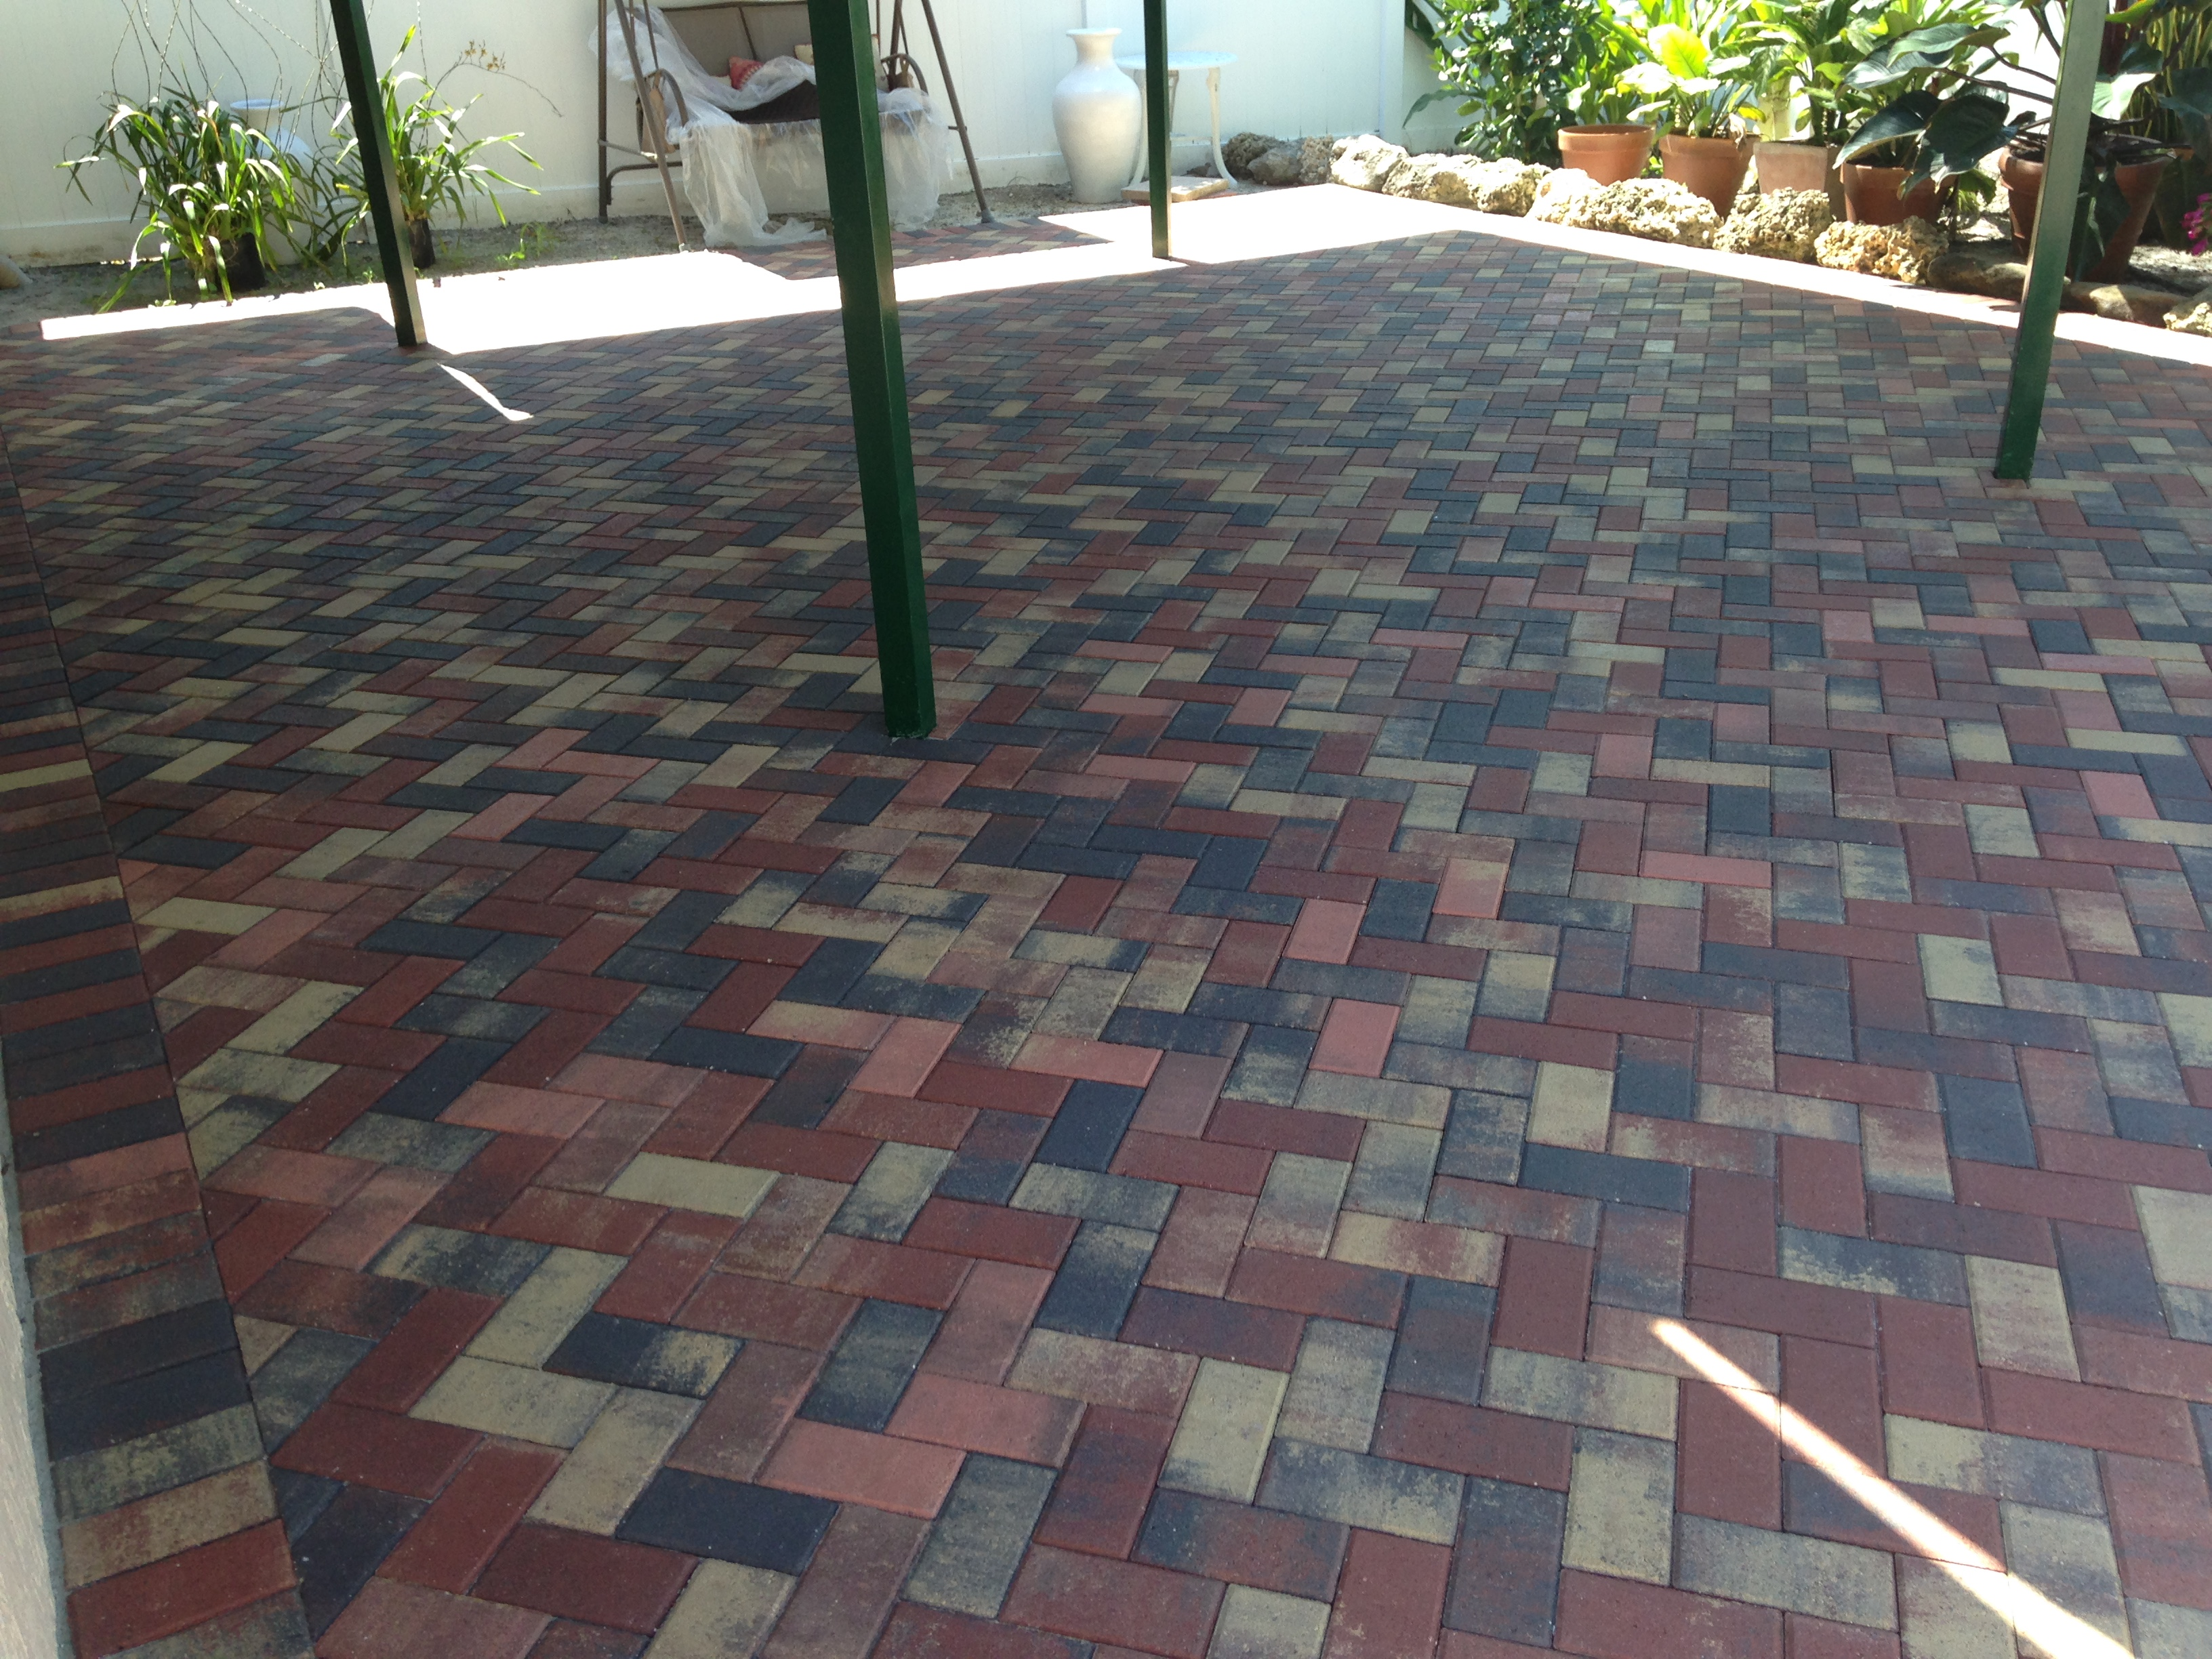 Brick Paver 4x8, Color: Habana